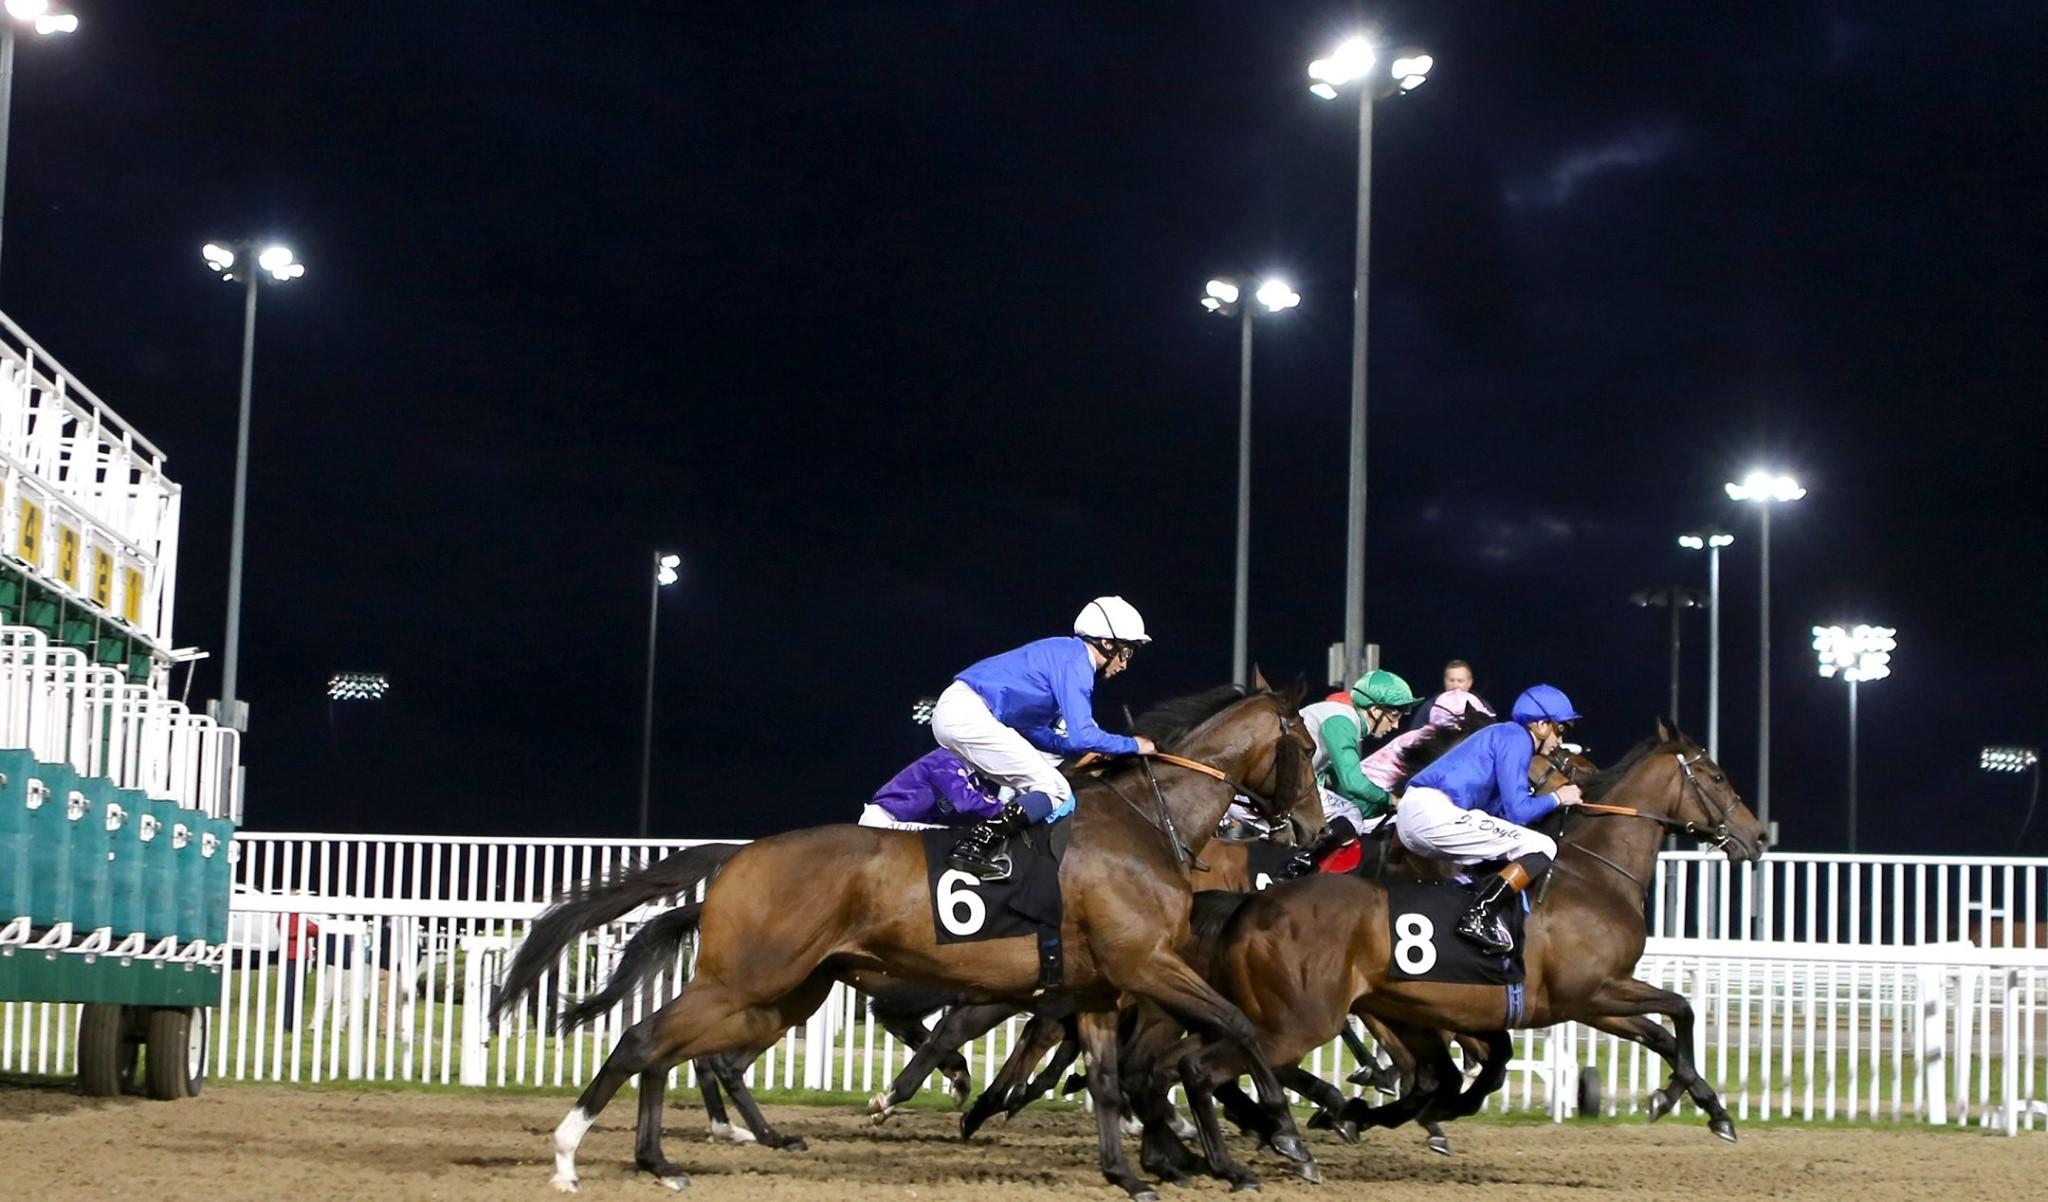 Chelmsford City Racecourse - Thursday nights under lights